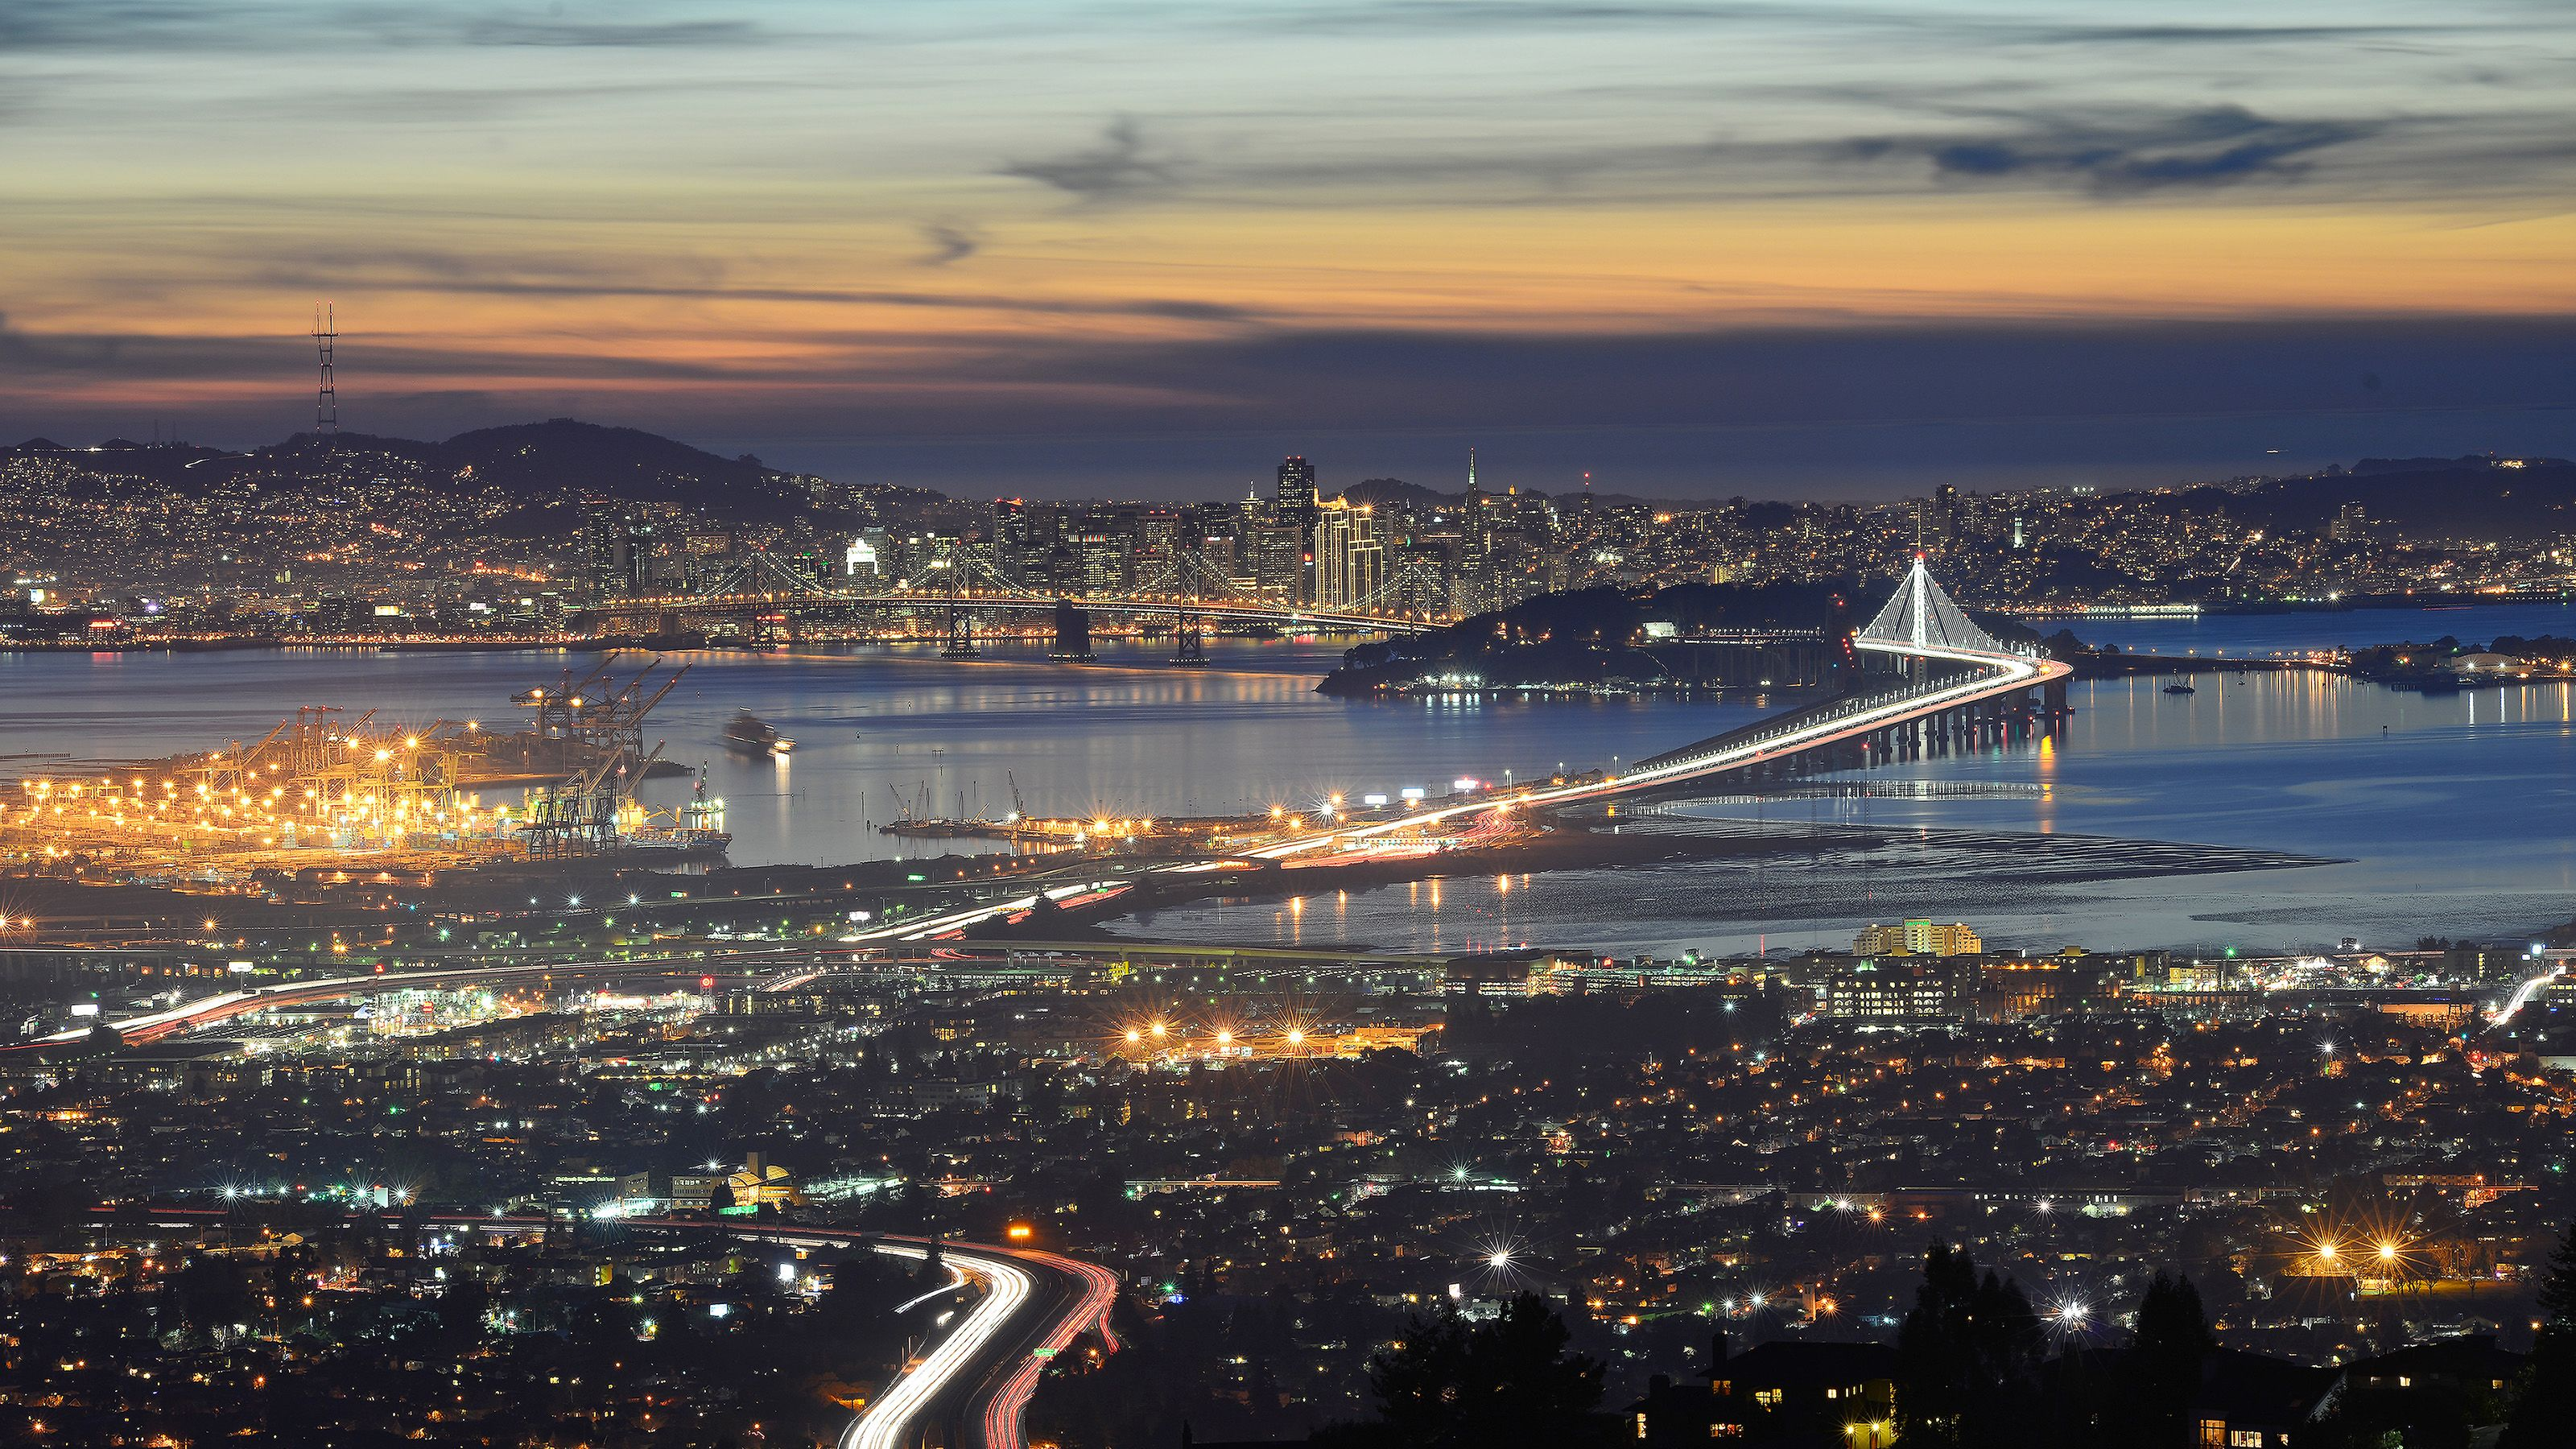 Panoramic view of the city at night in San Francisco